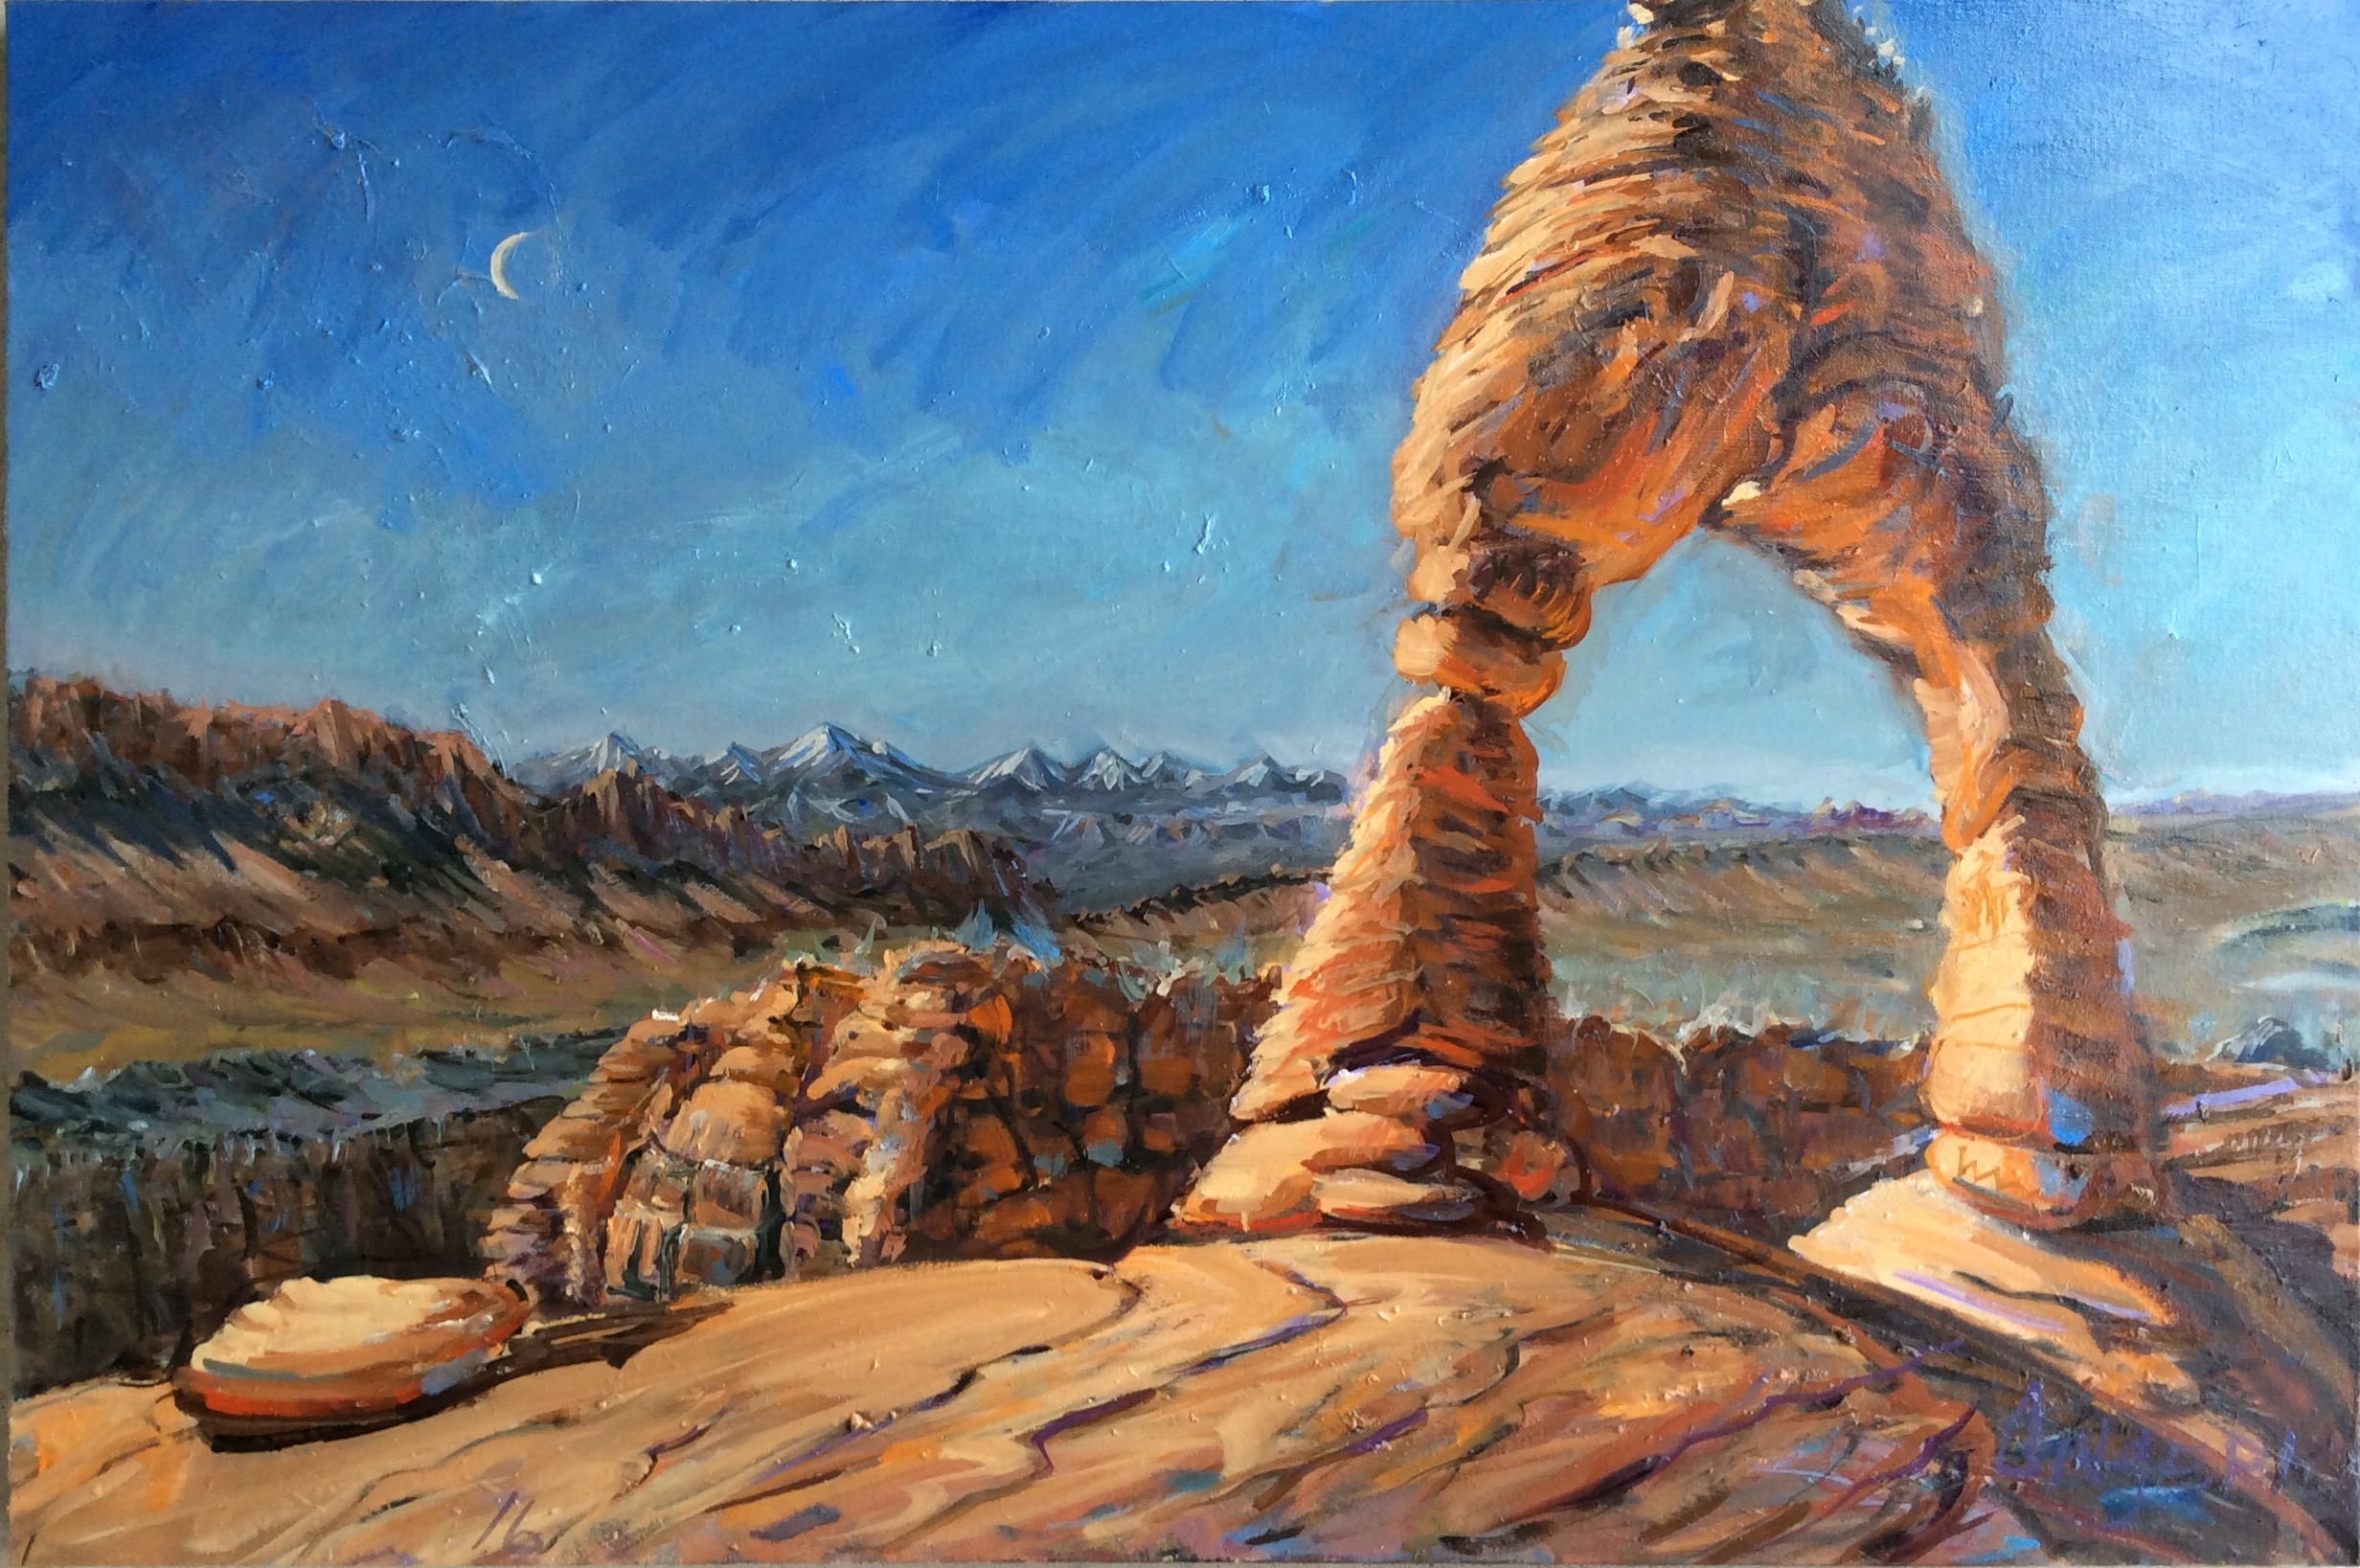 The Hills Have Eyes  24 x 36 inches, oil on canvas